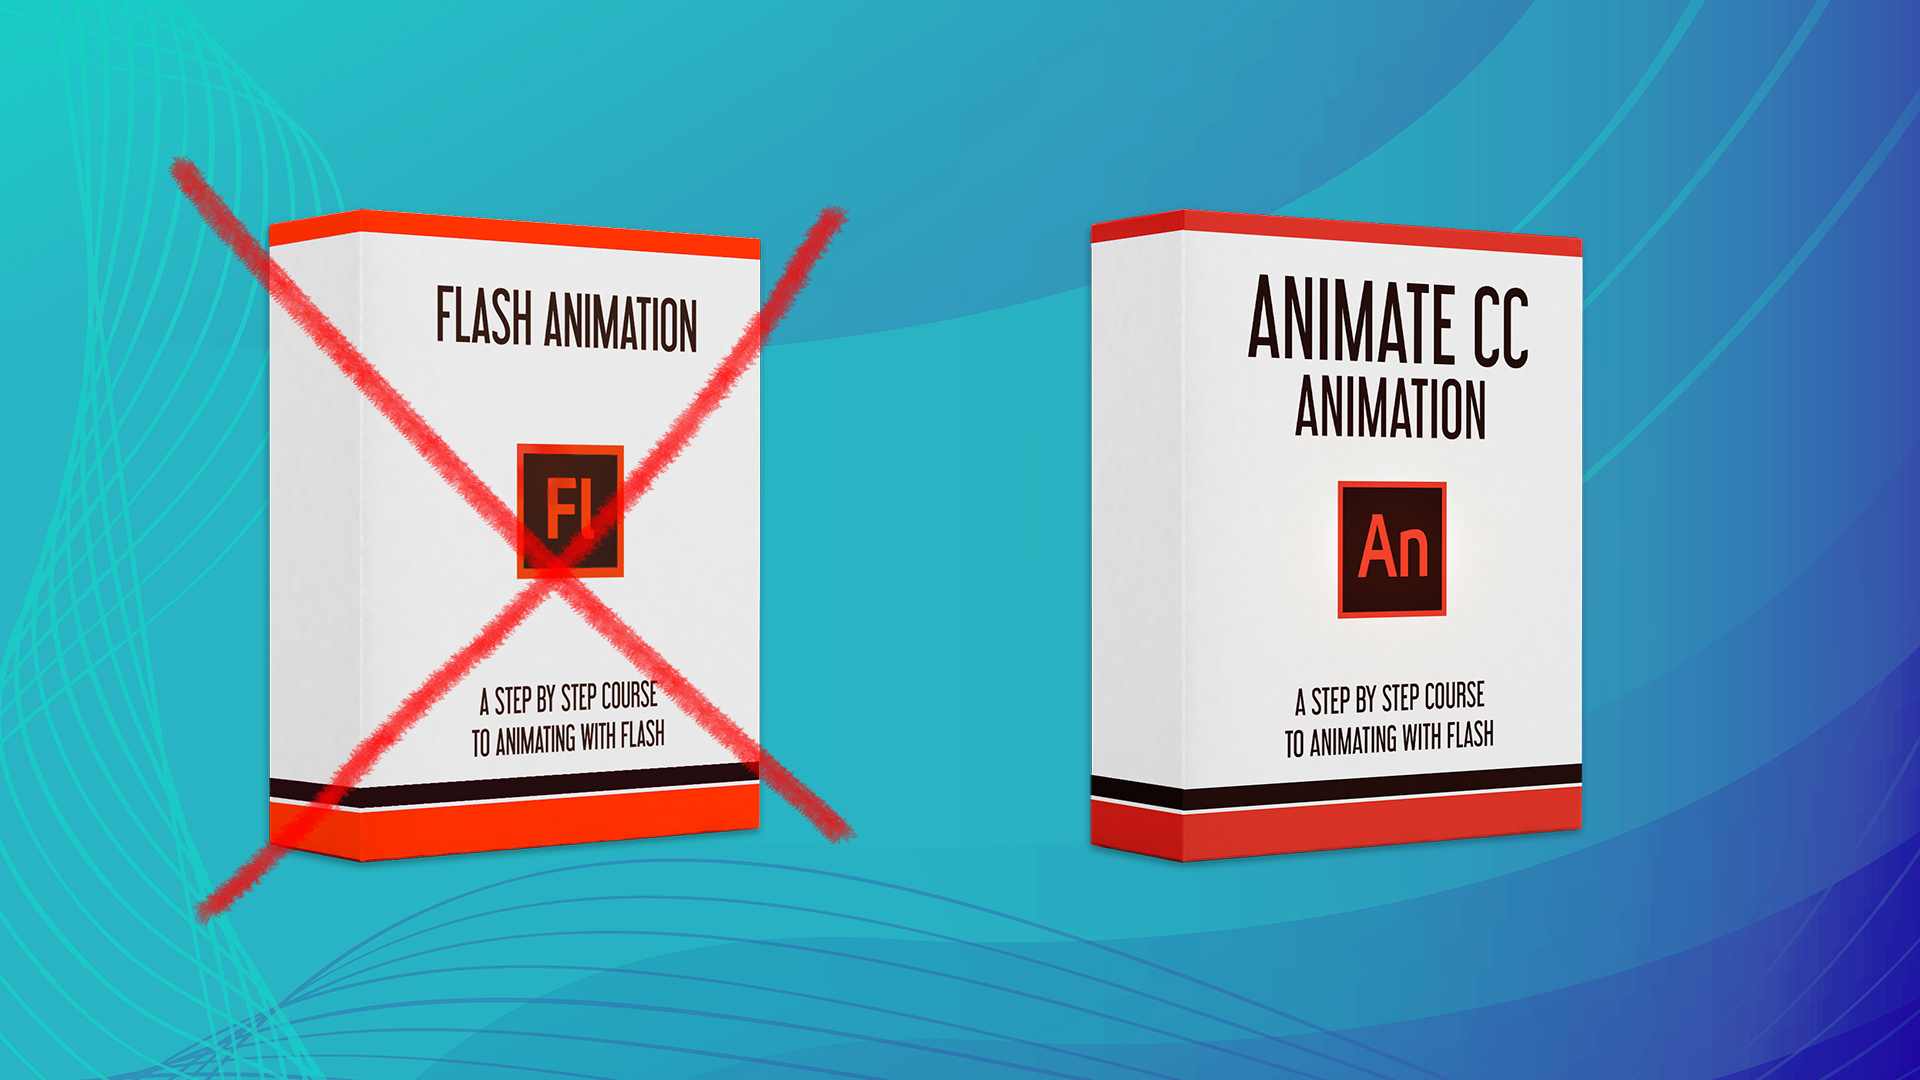 Flash animation is now animate cc animation course update bloop animation